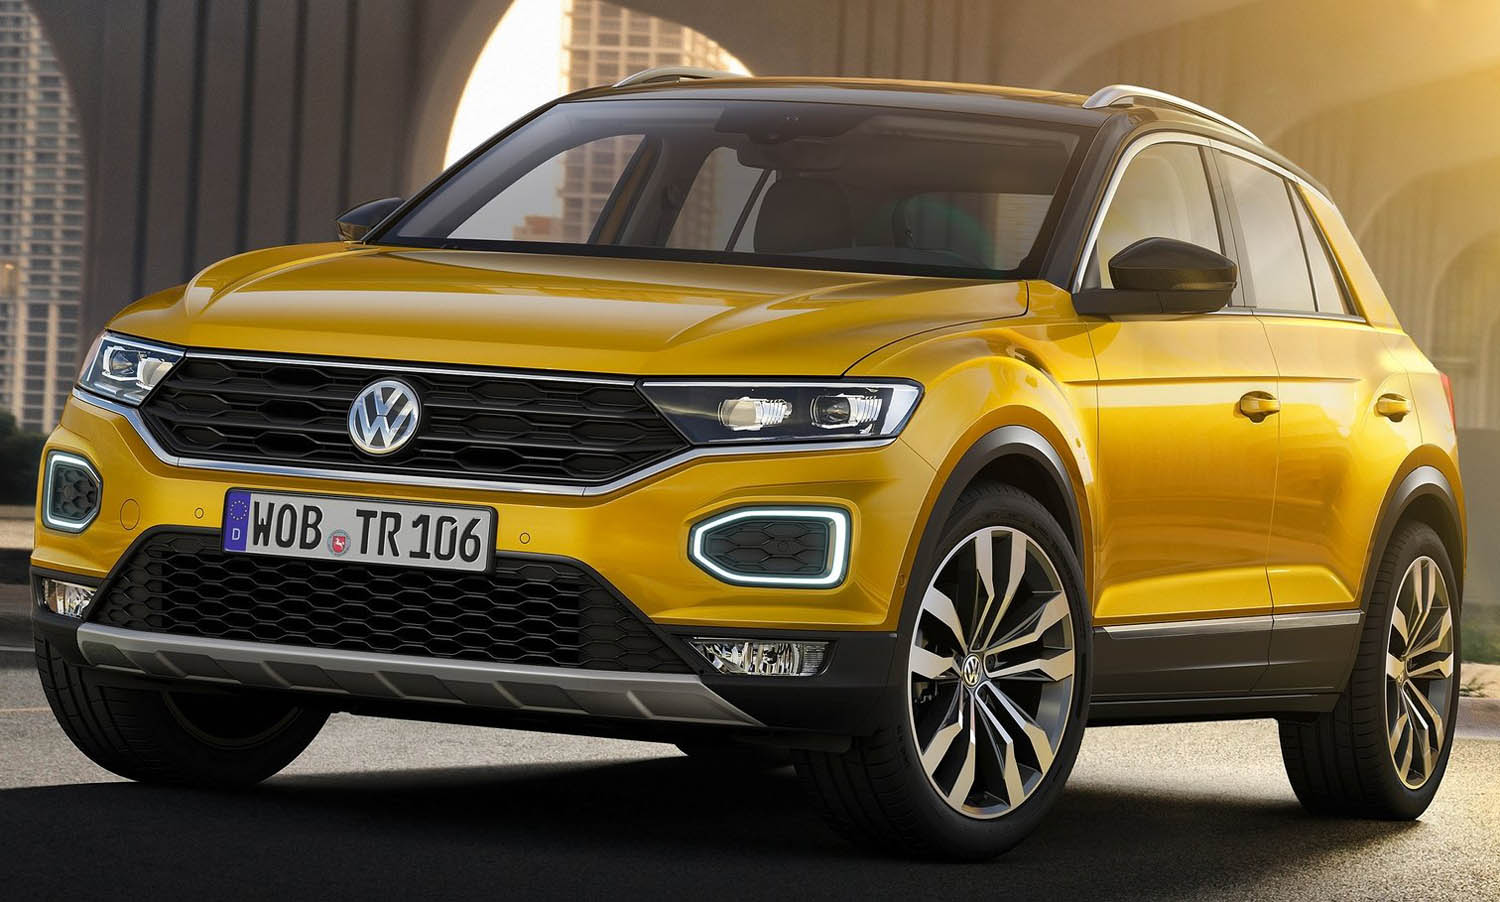 The Powerful And Charismatic Volkswagen T-Roc Arrives In The Bahrain